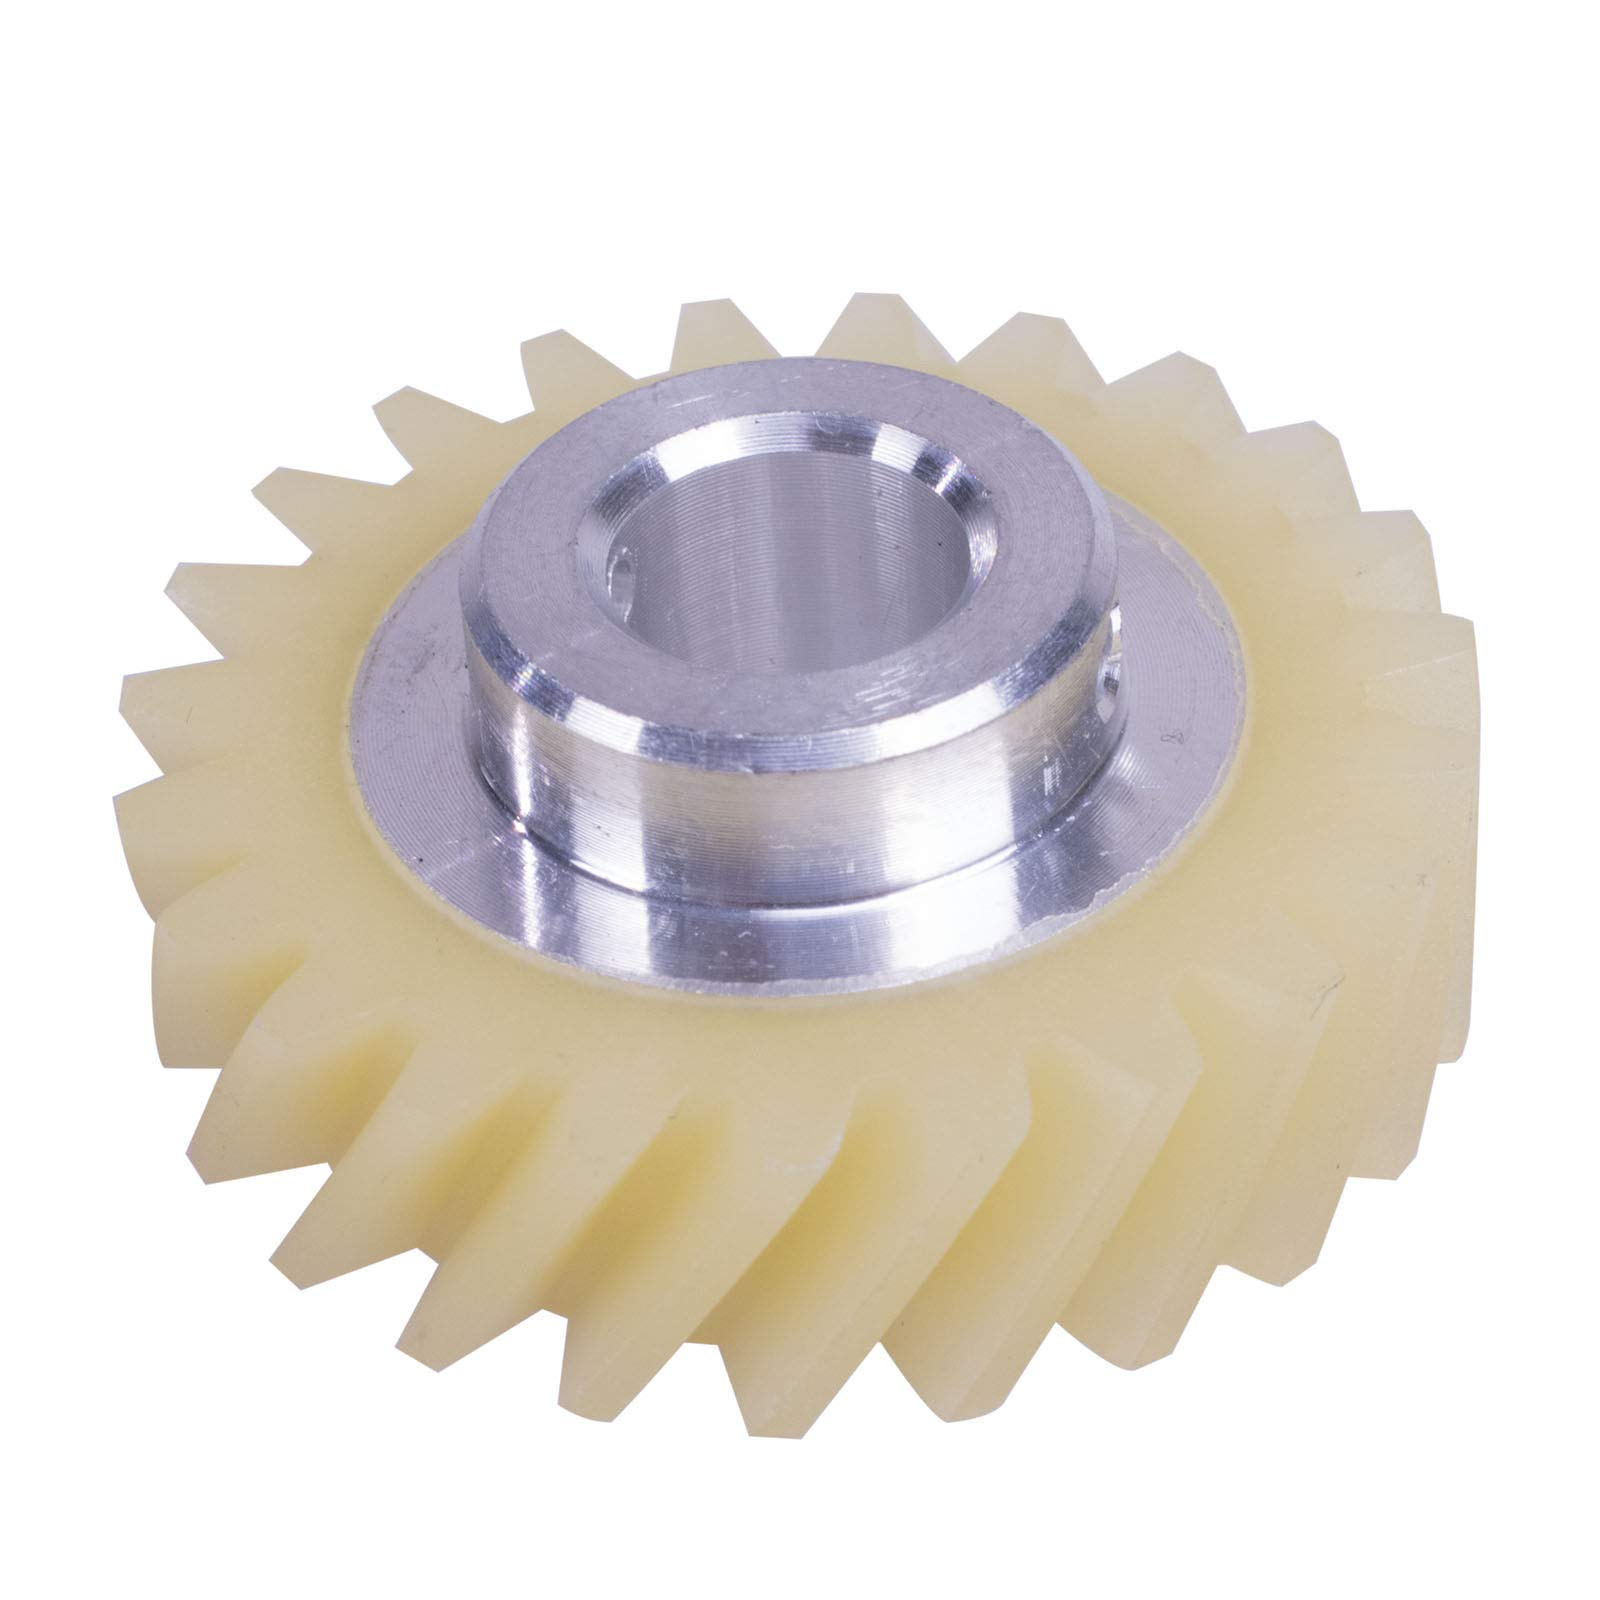 W10112253 Replacement Fits KitchenAid Artisan Mixer Worm Drive Gear Repair